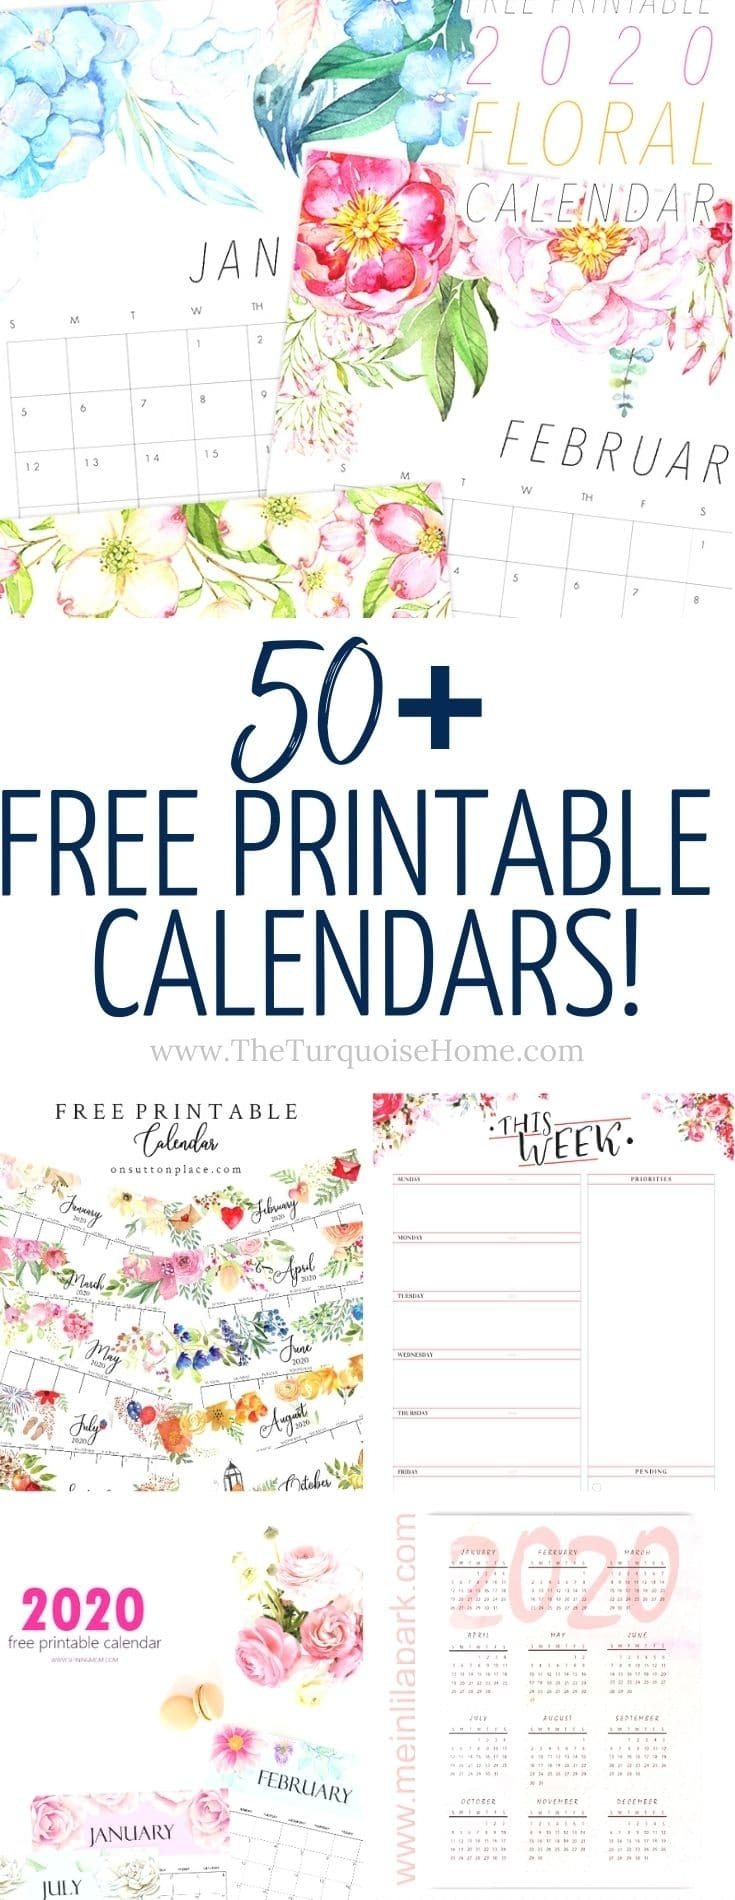 Collect Cute Free Printable Calenxdar July